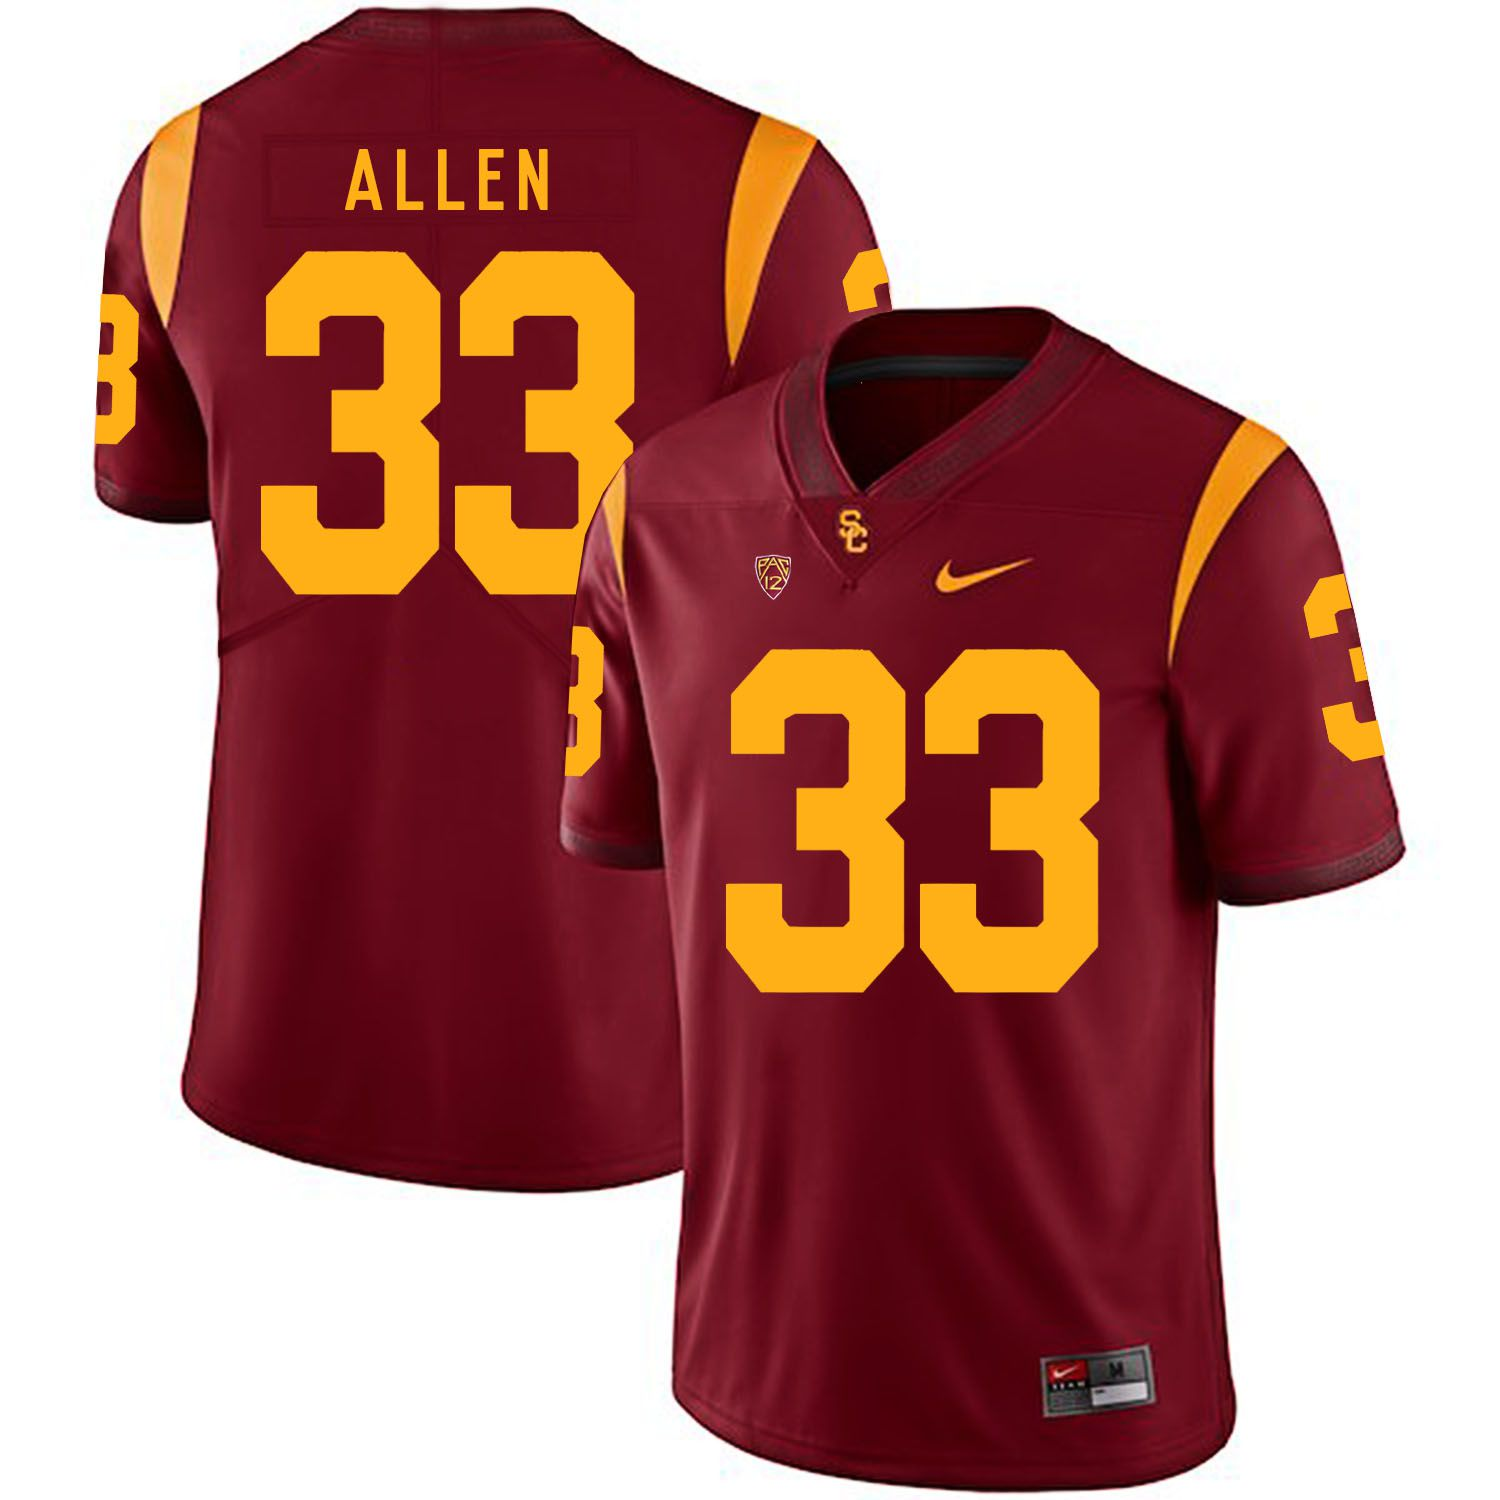 Men USC Trojans 33 Allen Red Customized NCAA Jerseys